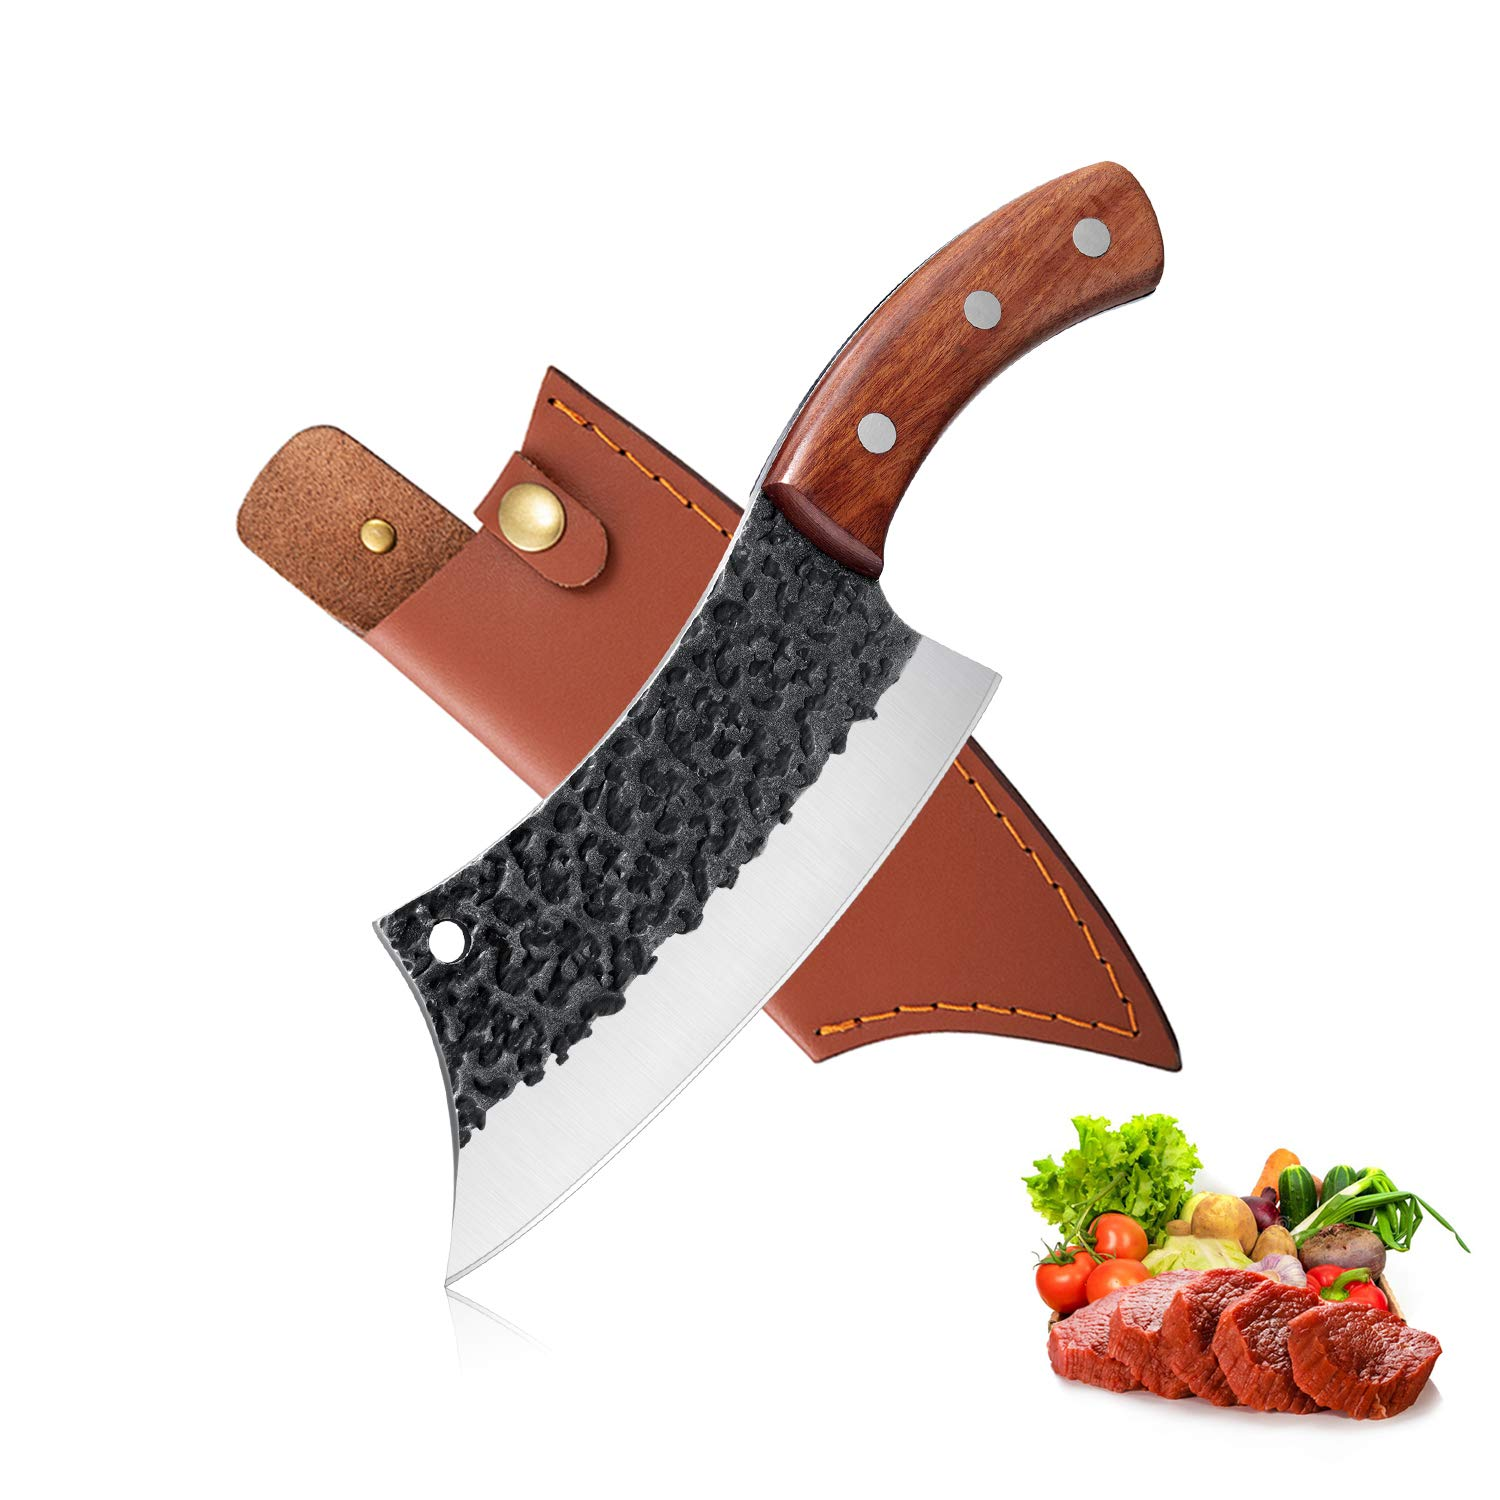 Hand Forged Meat Cleaver 6.3 Inch Kitchen Chef Knife with Leather Sheath and Gift Box Outdoor Butcher Knife Hammered Chopp...